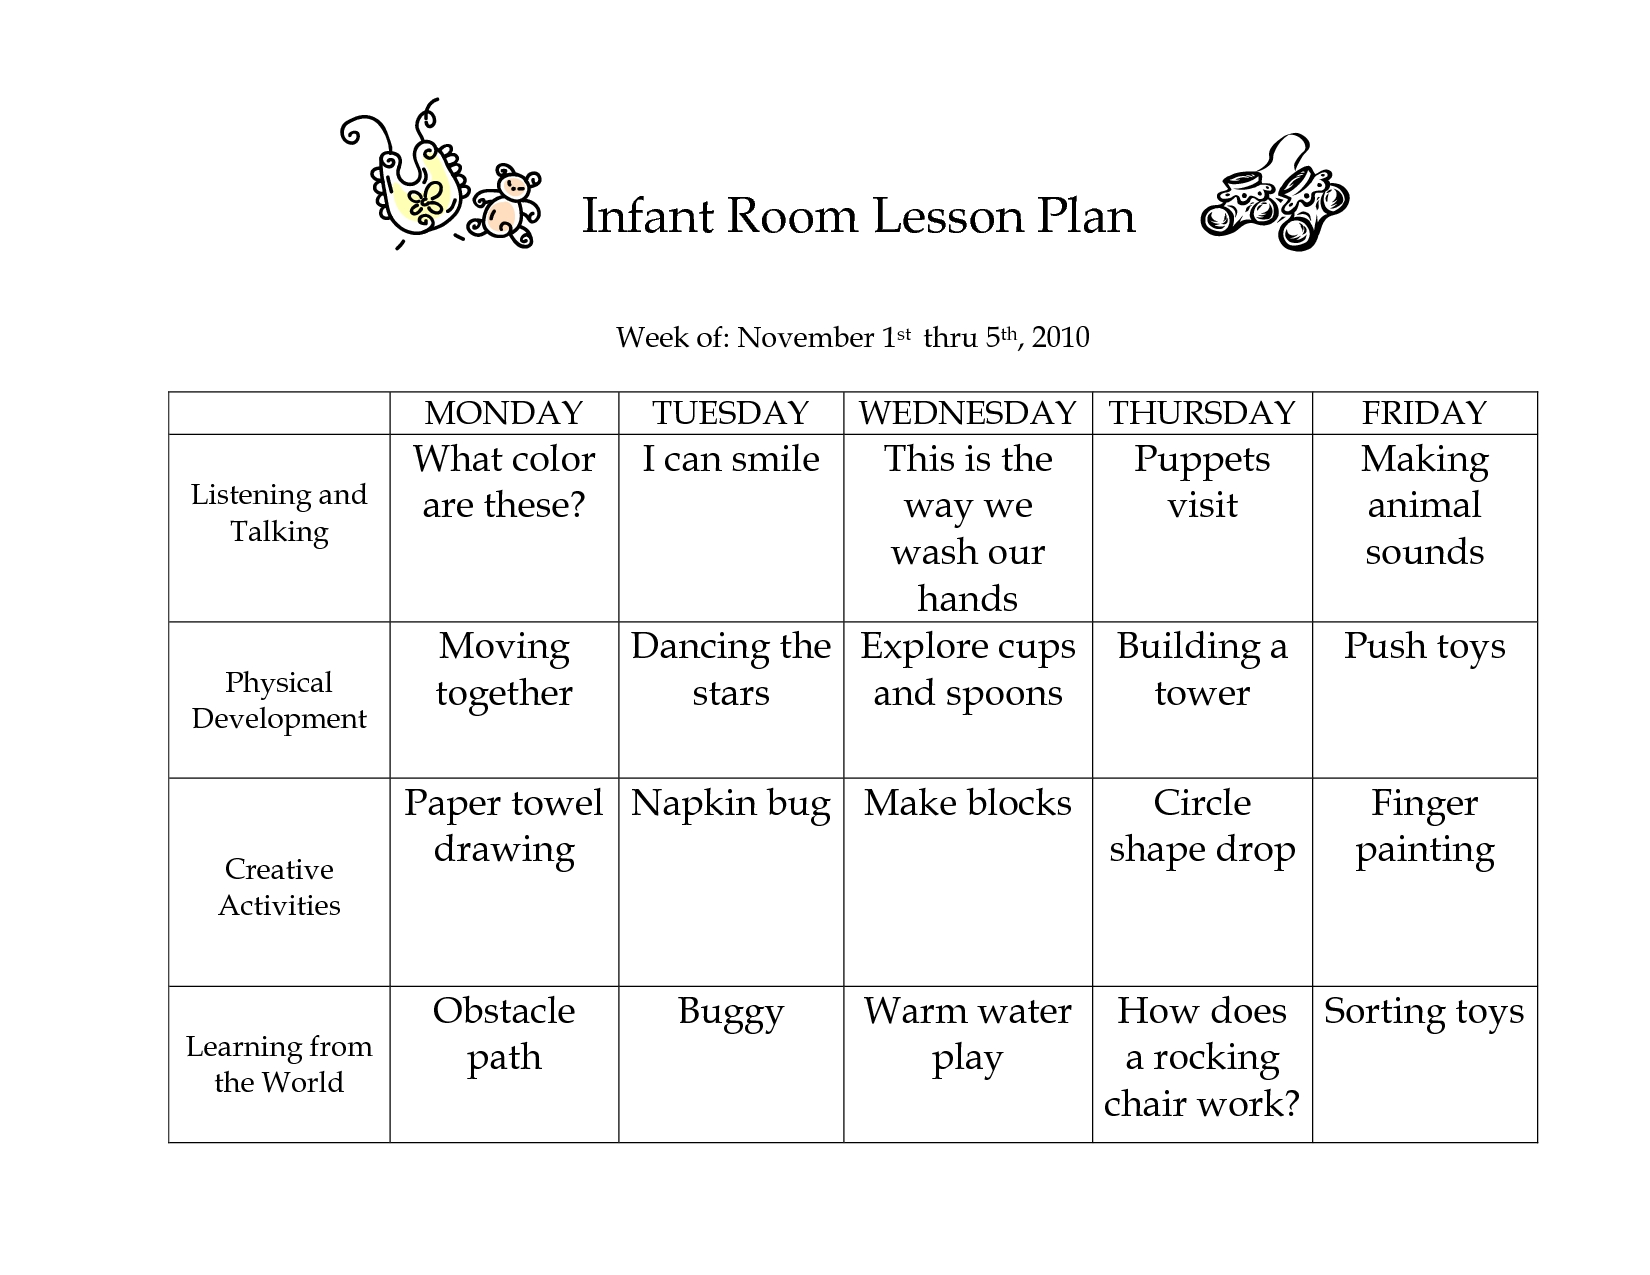 Infant Room Lesson Plan Week Of November 1St Thru 5Th_ 2010-Printable Template Childcare Lesson Plan 2020